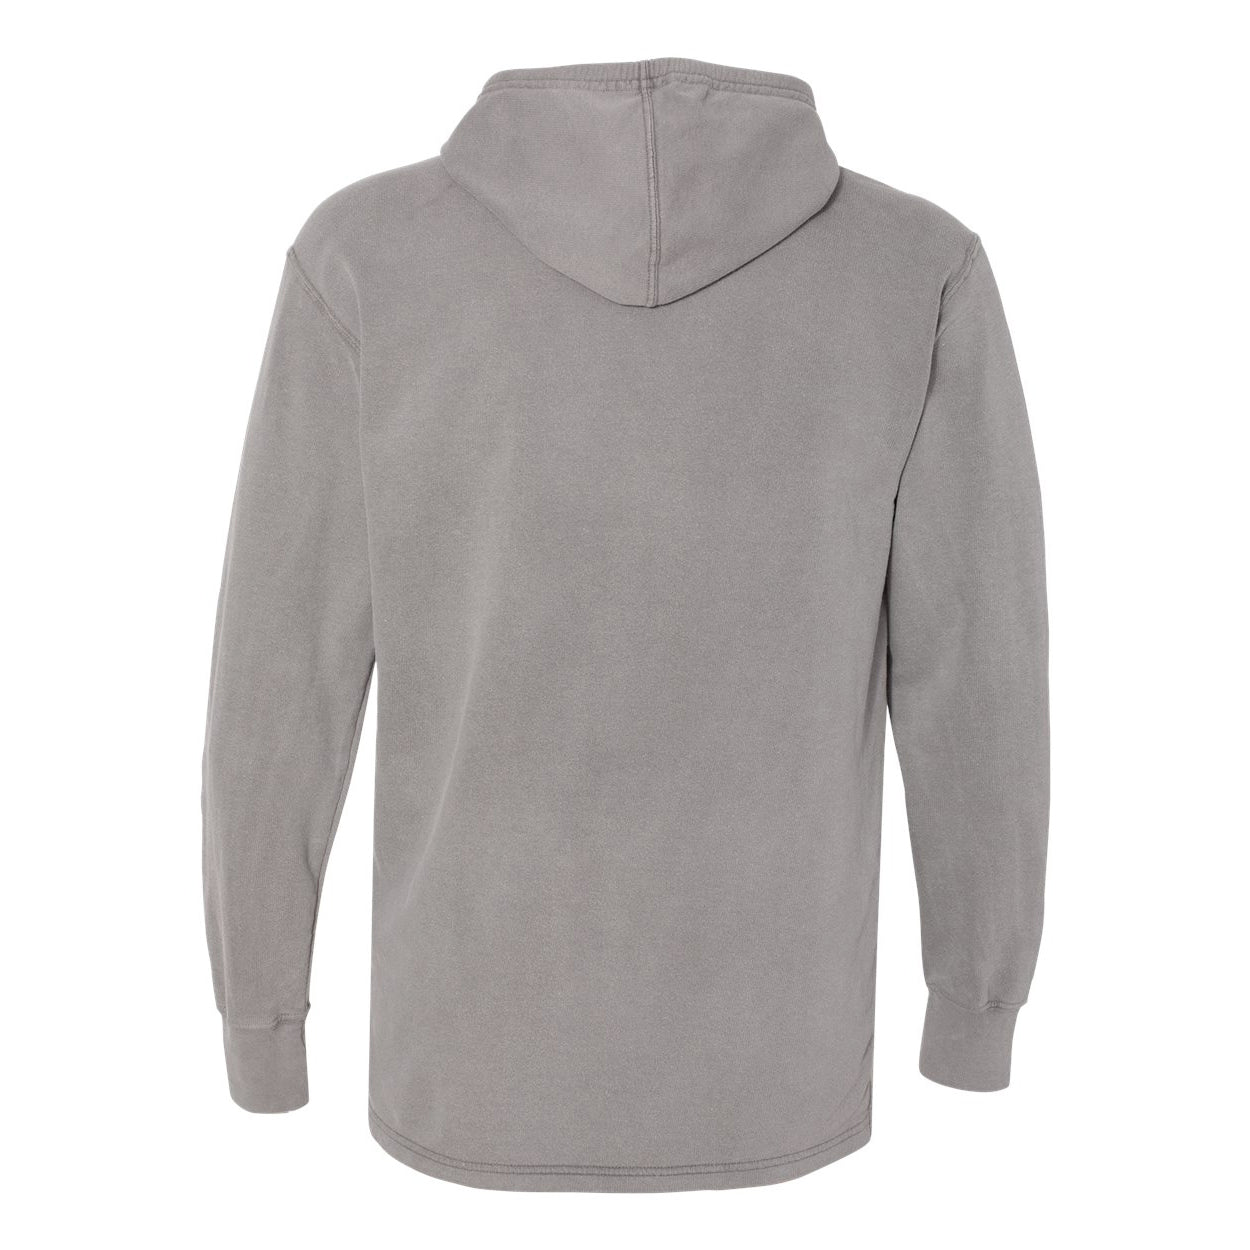 RHINO PIGMENT DYED HEAVY JERSEY SUBA HOODIE - GRANITE GREY  Men's Knit By Robert James